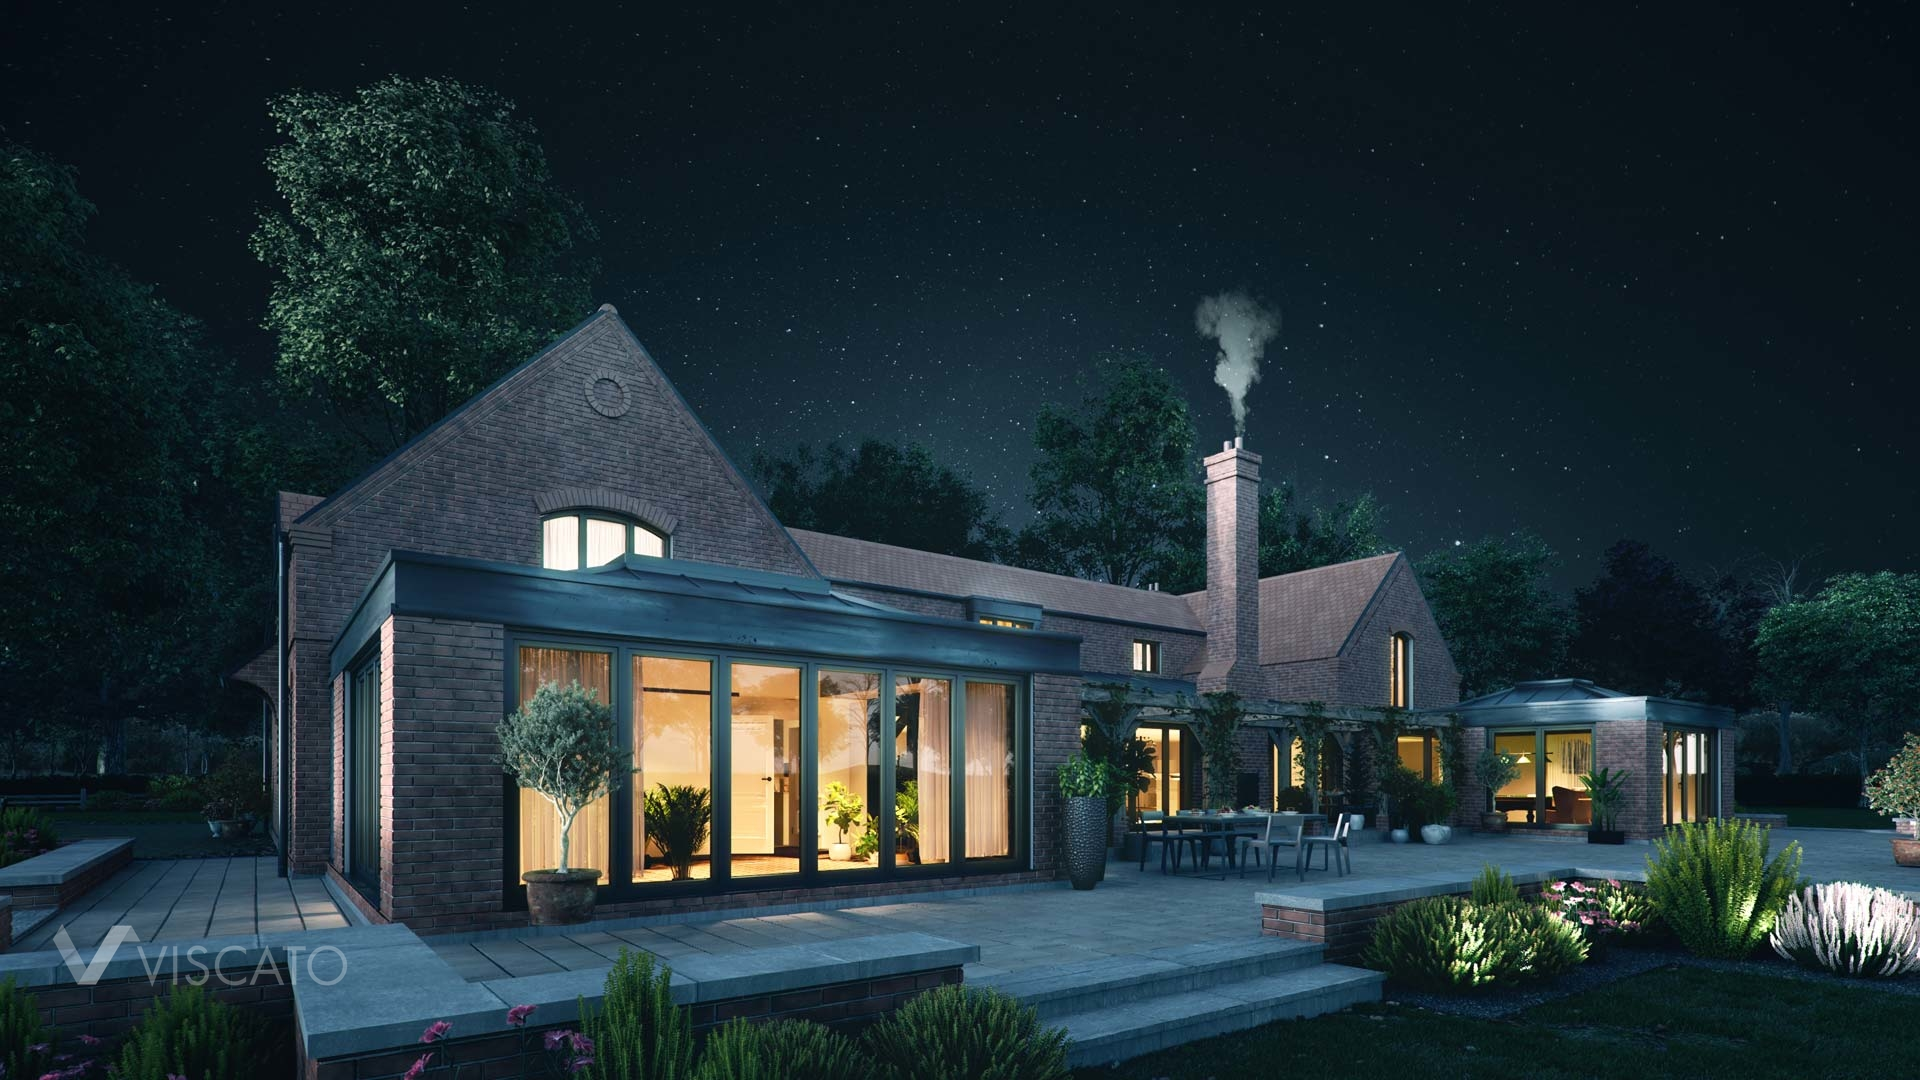 3D rendering of a detached house in England, view from the back